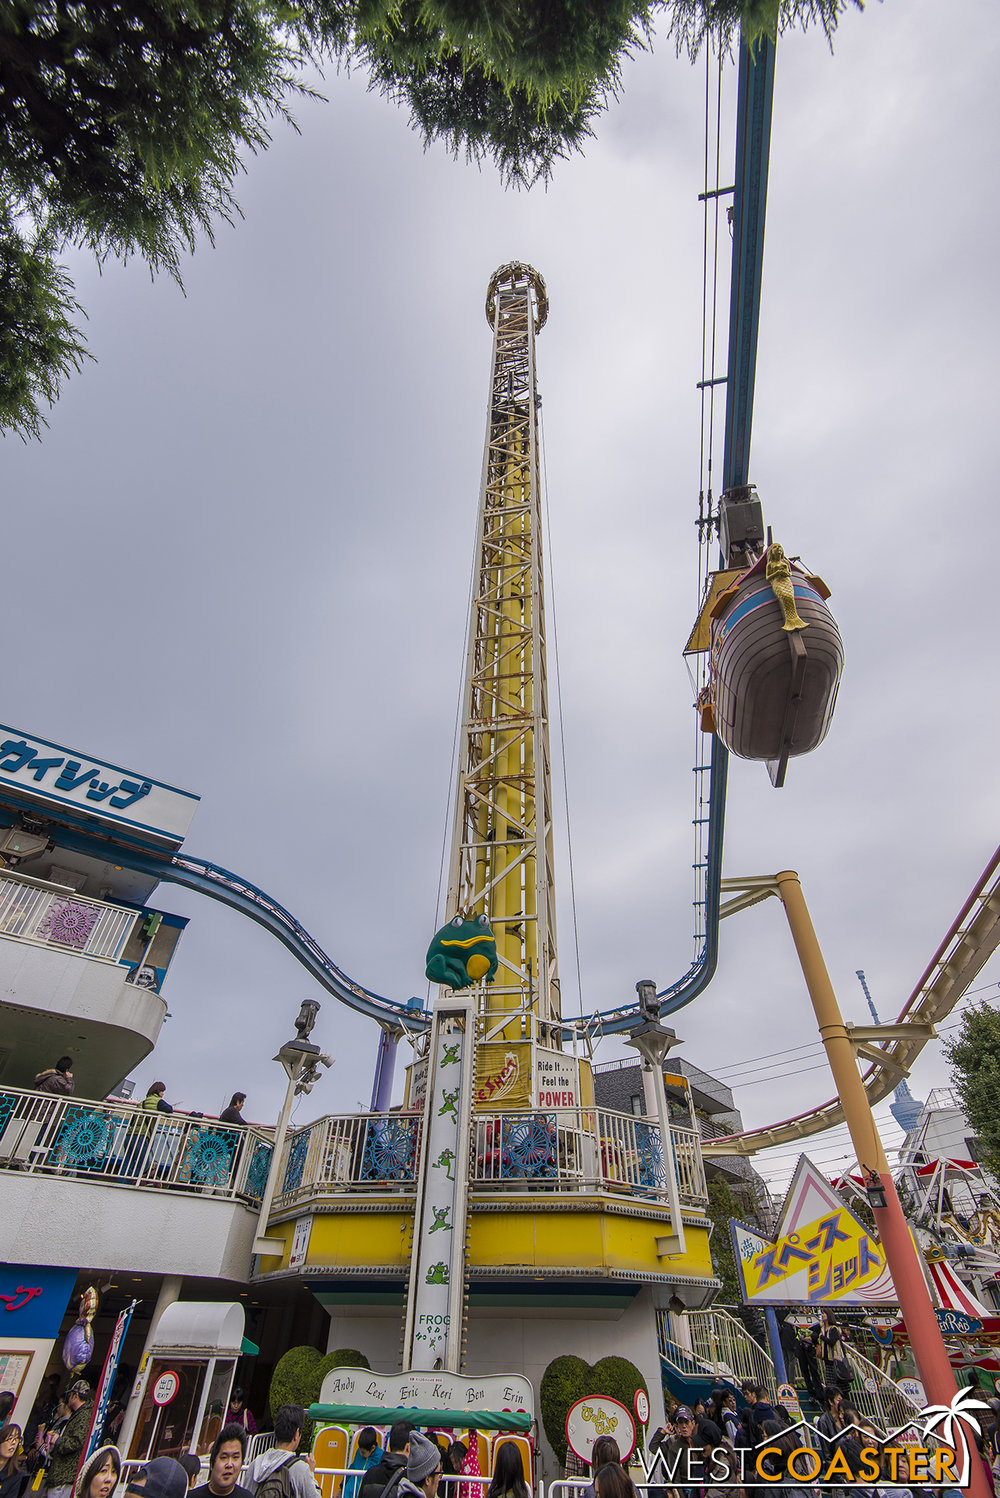 Space Shot towers above everything else in the park.